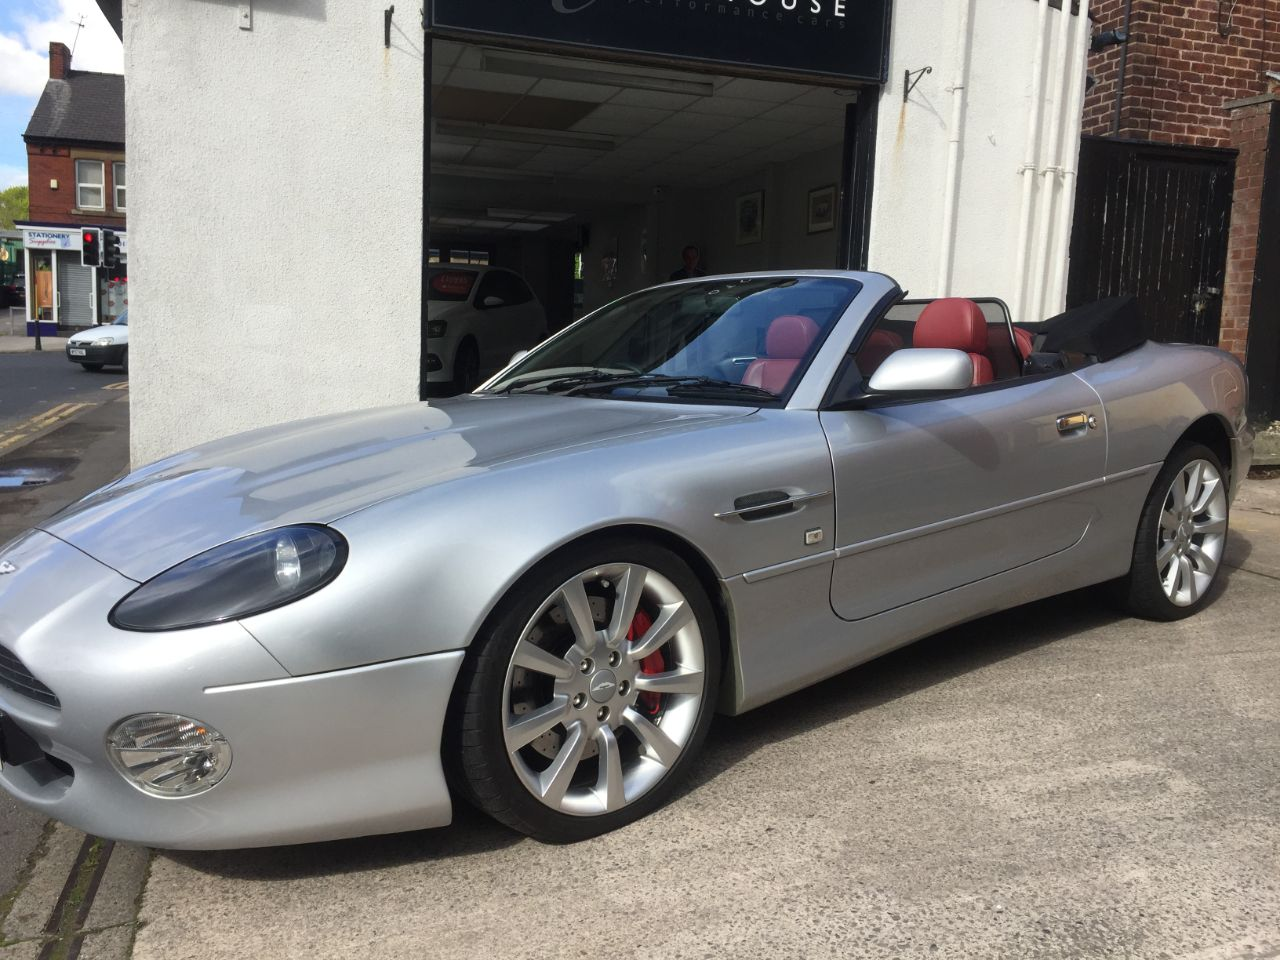 Aston Martin DB7 5.9 V12 Vantage Volante 2dr Auto Convertible Petrol Silver at Motorhouse Cheshire Stockport